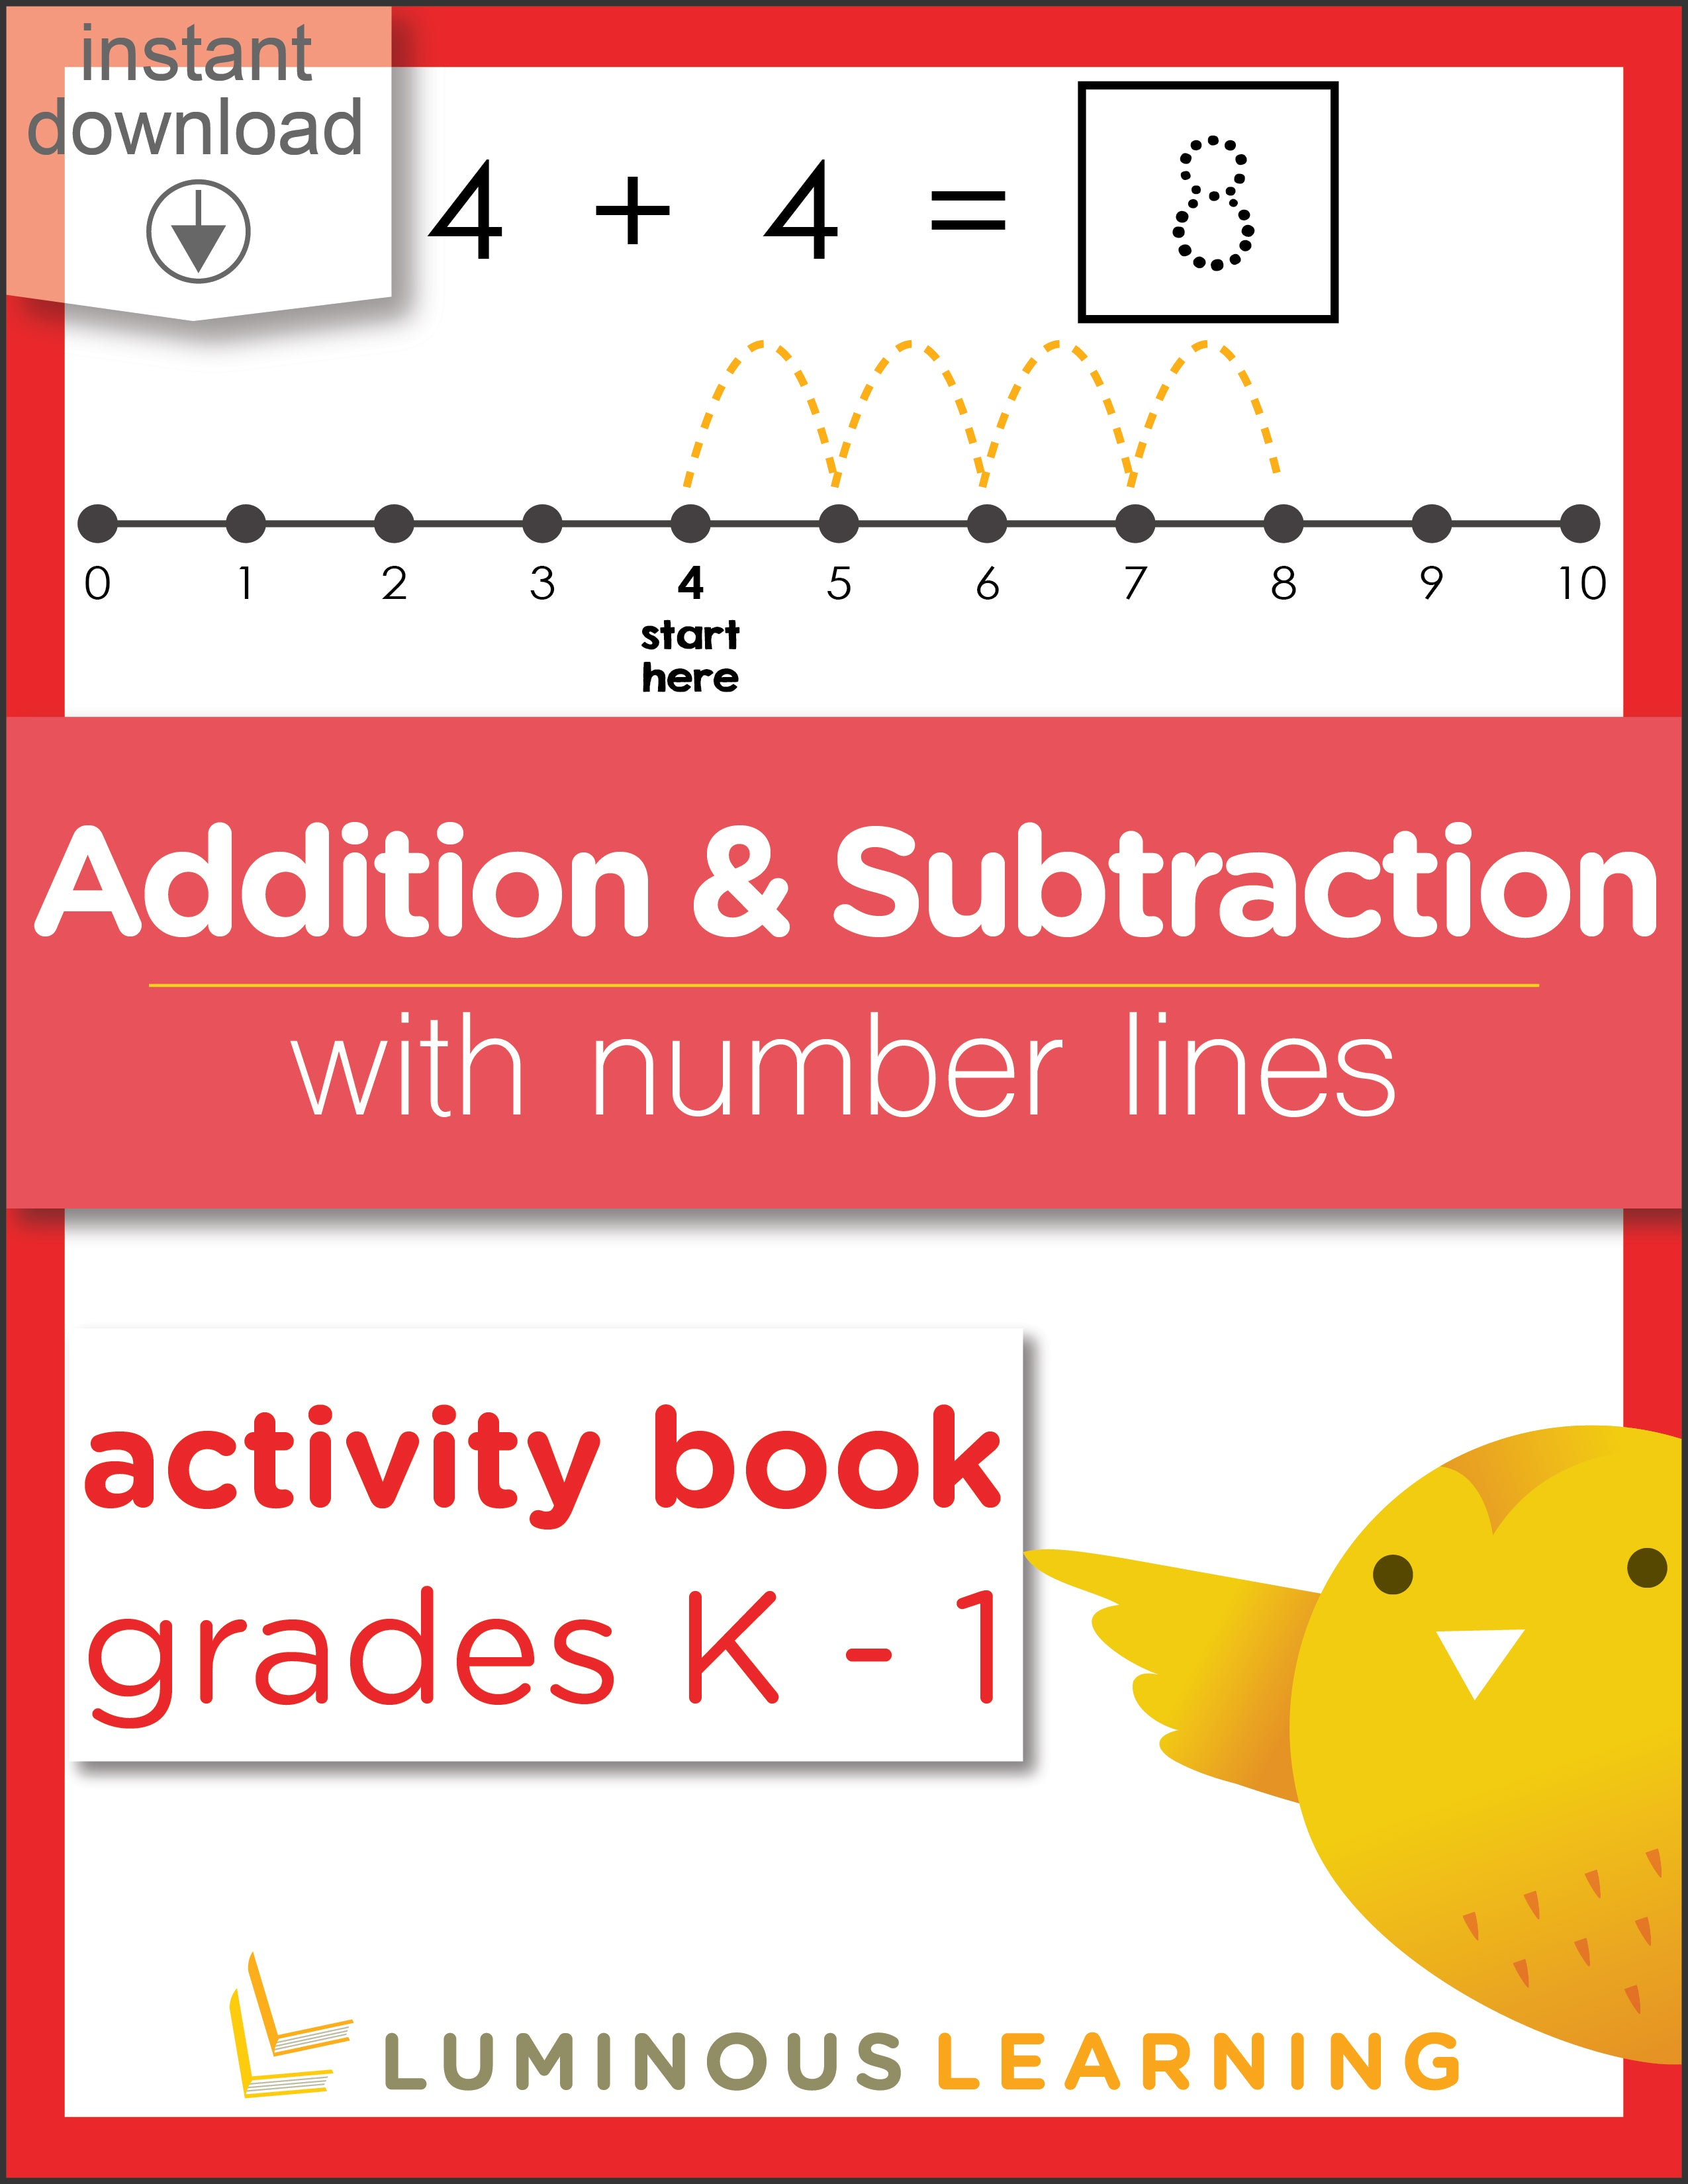 worksheet Numberlines grades k 1 addition and subtraction with number lines printable act luminous learning